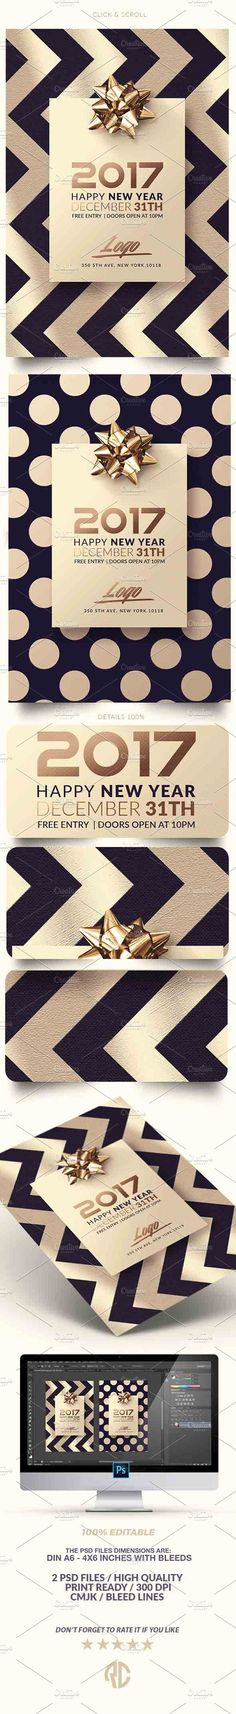 Love awesome design? Feast your eyes on New Year | Classy Invitation by @romecreation on @CreativeMarket   #happy #newyear #flyer #template #christmas #december #gold #invitation #postcards #cards #nye #ny2017 #romecration